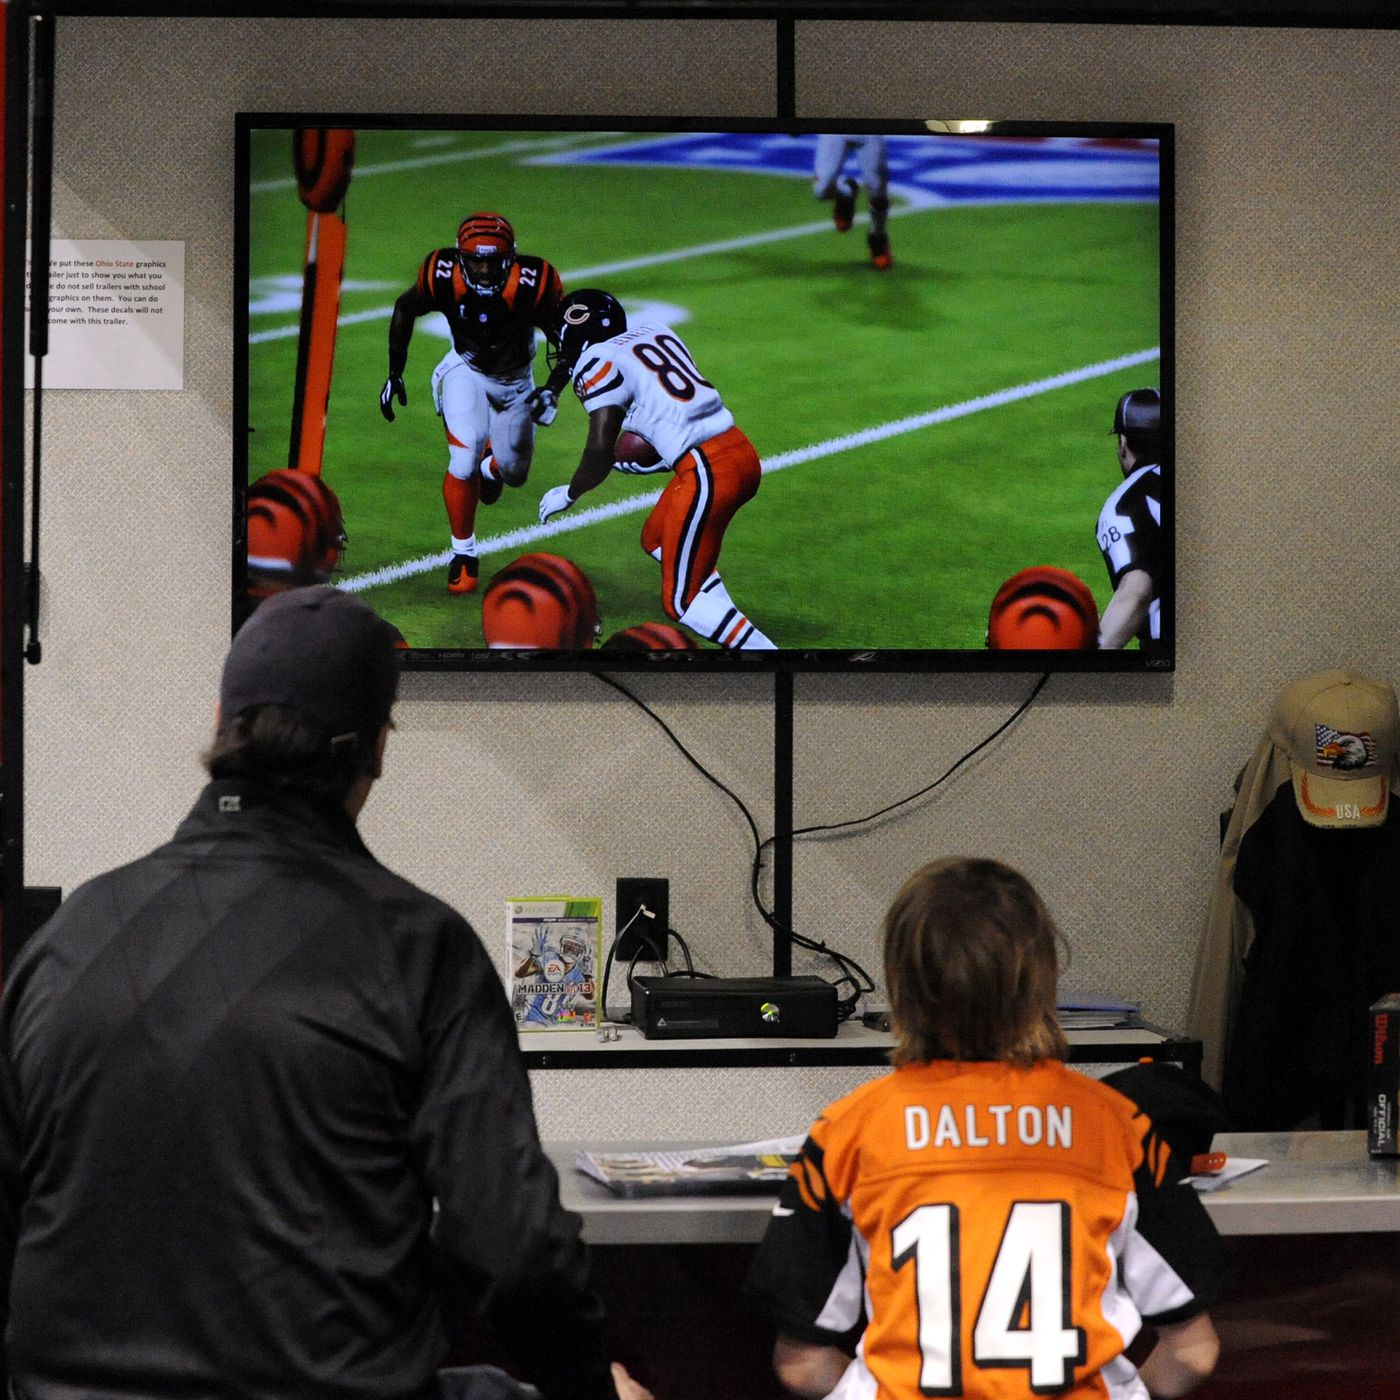 Madden NFL 20 ratings released for all Browns players, where